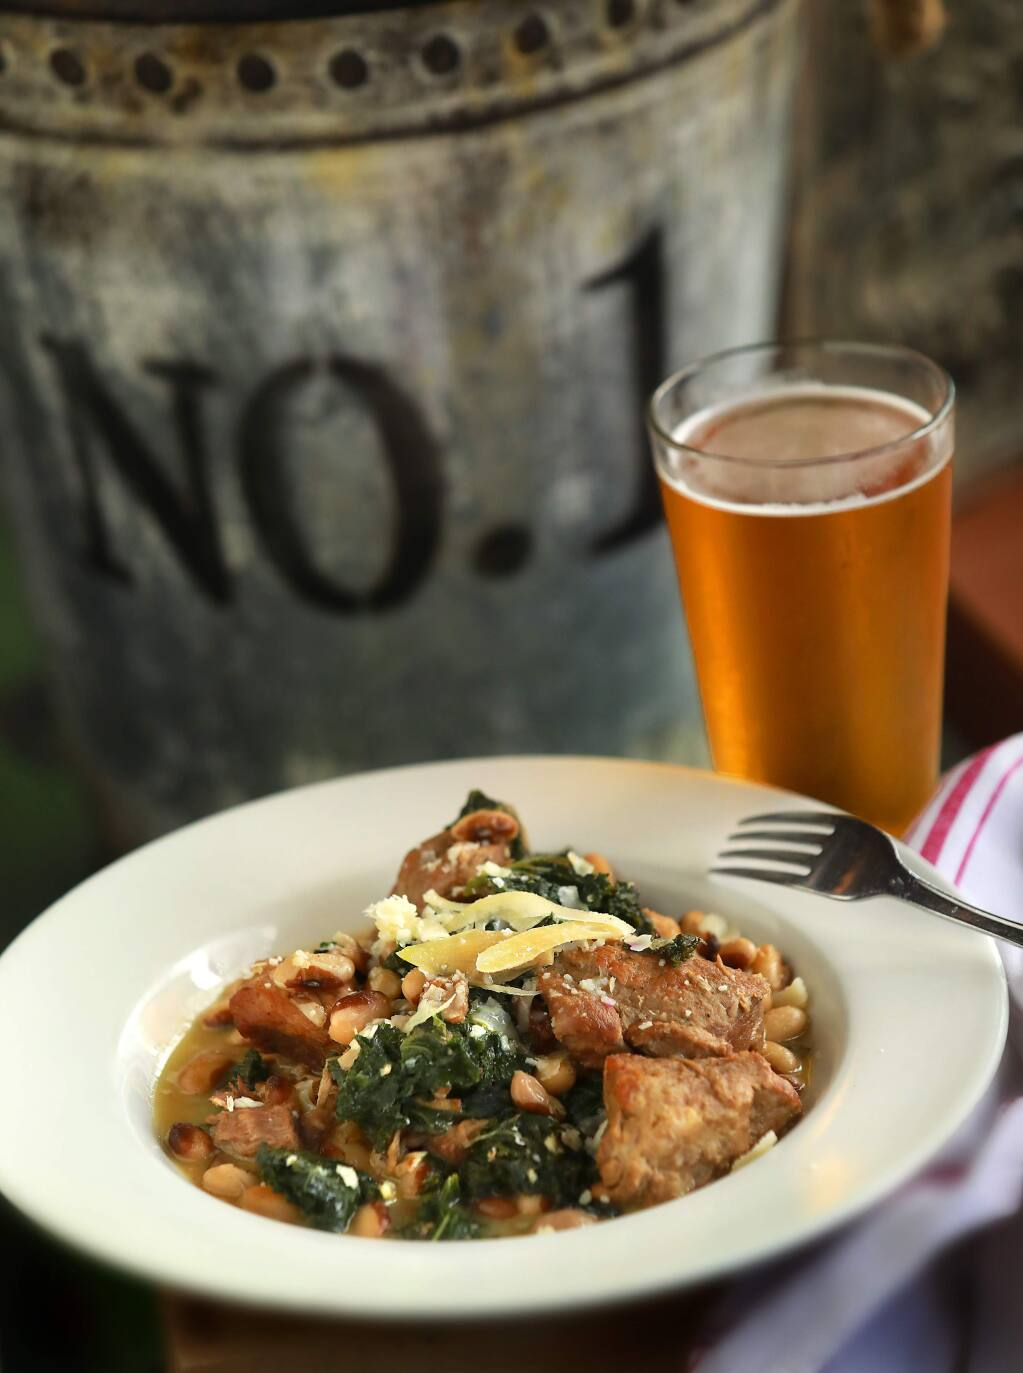 Pork and Heirloom Beans combines braised pork, rancho gordo heirloom yellow eye beans and greens from the Gypsy Cafe in Sebastopol. (John Burgess/The Press Democrat)